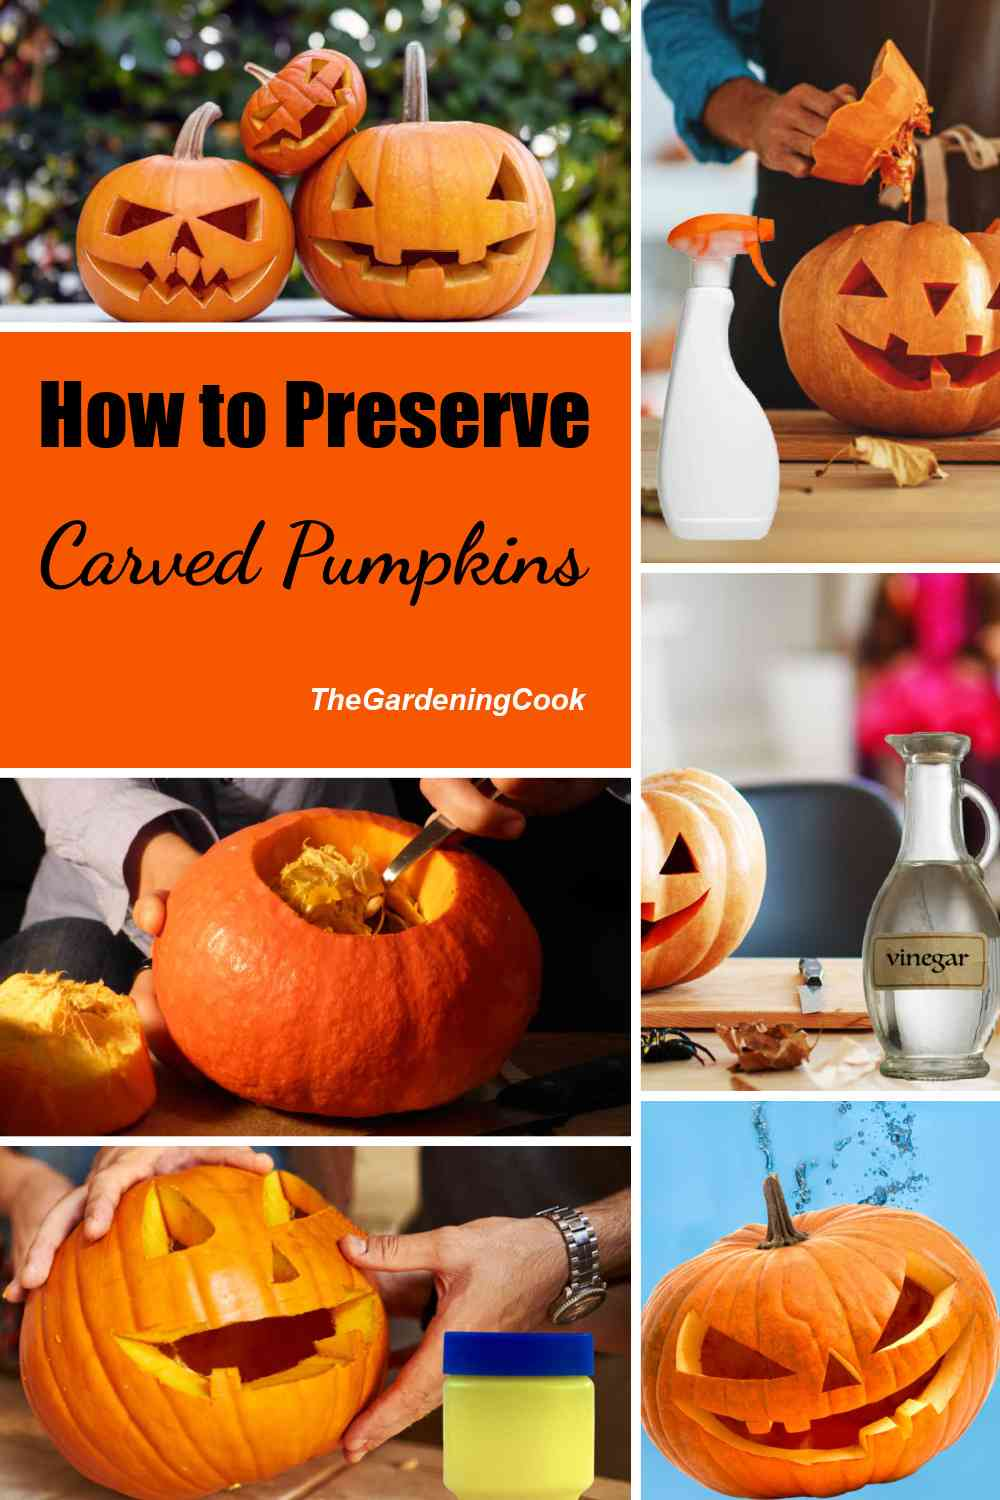 Pumpkins and pumpkin carving in a collage with words How to preserve carved pumpkins.